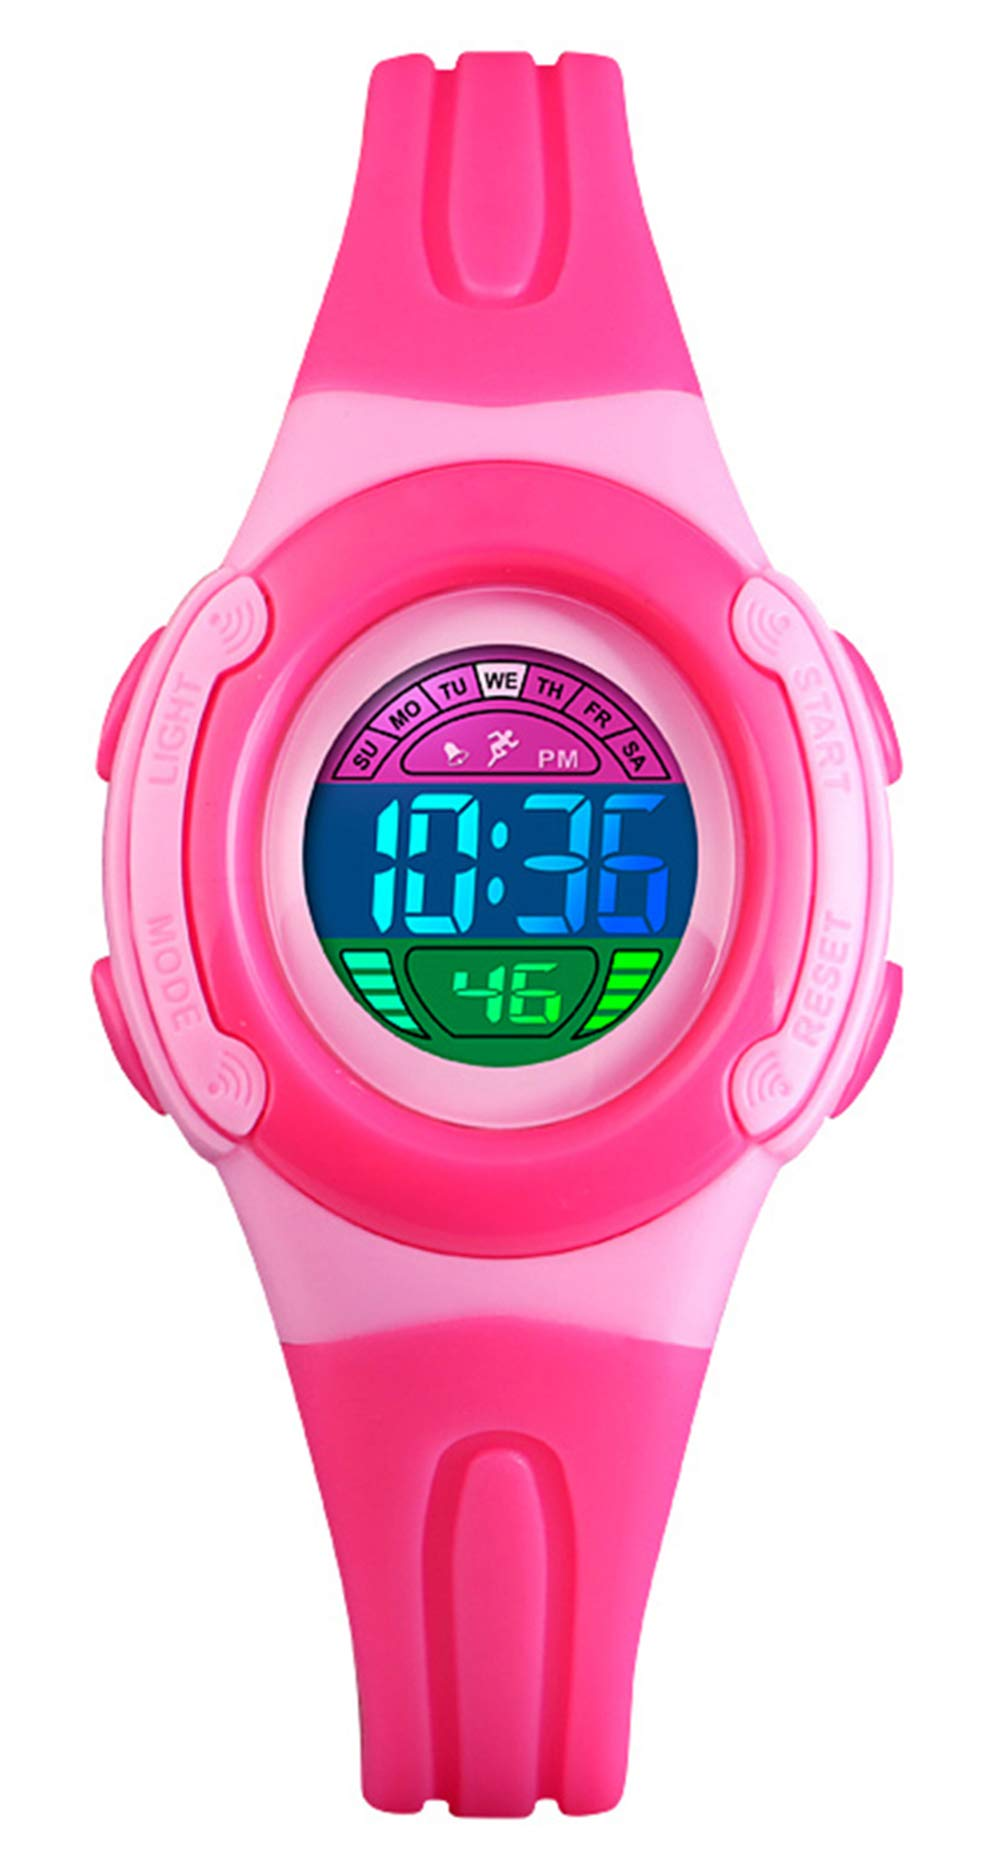 BHGWR Girls Watches, Daily Waterproof Kids Digital Watch with Stopwatch/Alarm/Colorful EL Light, Childrens LED Sport Wrist Watches for Girl – Pink